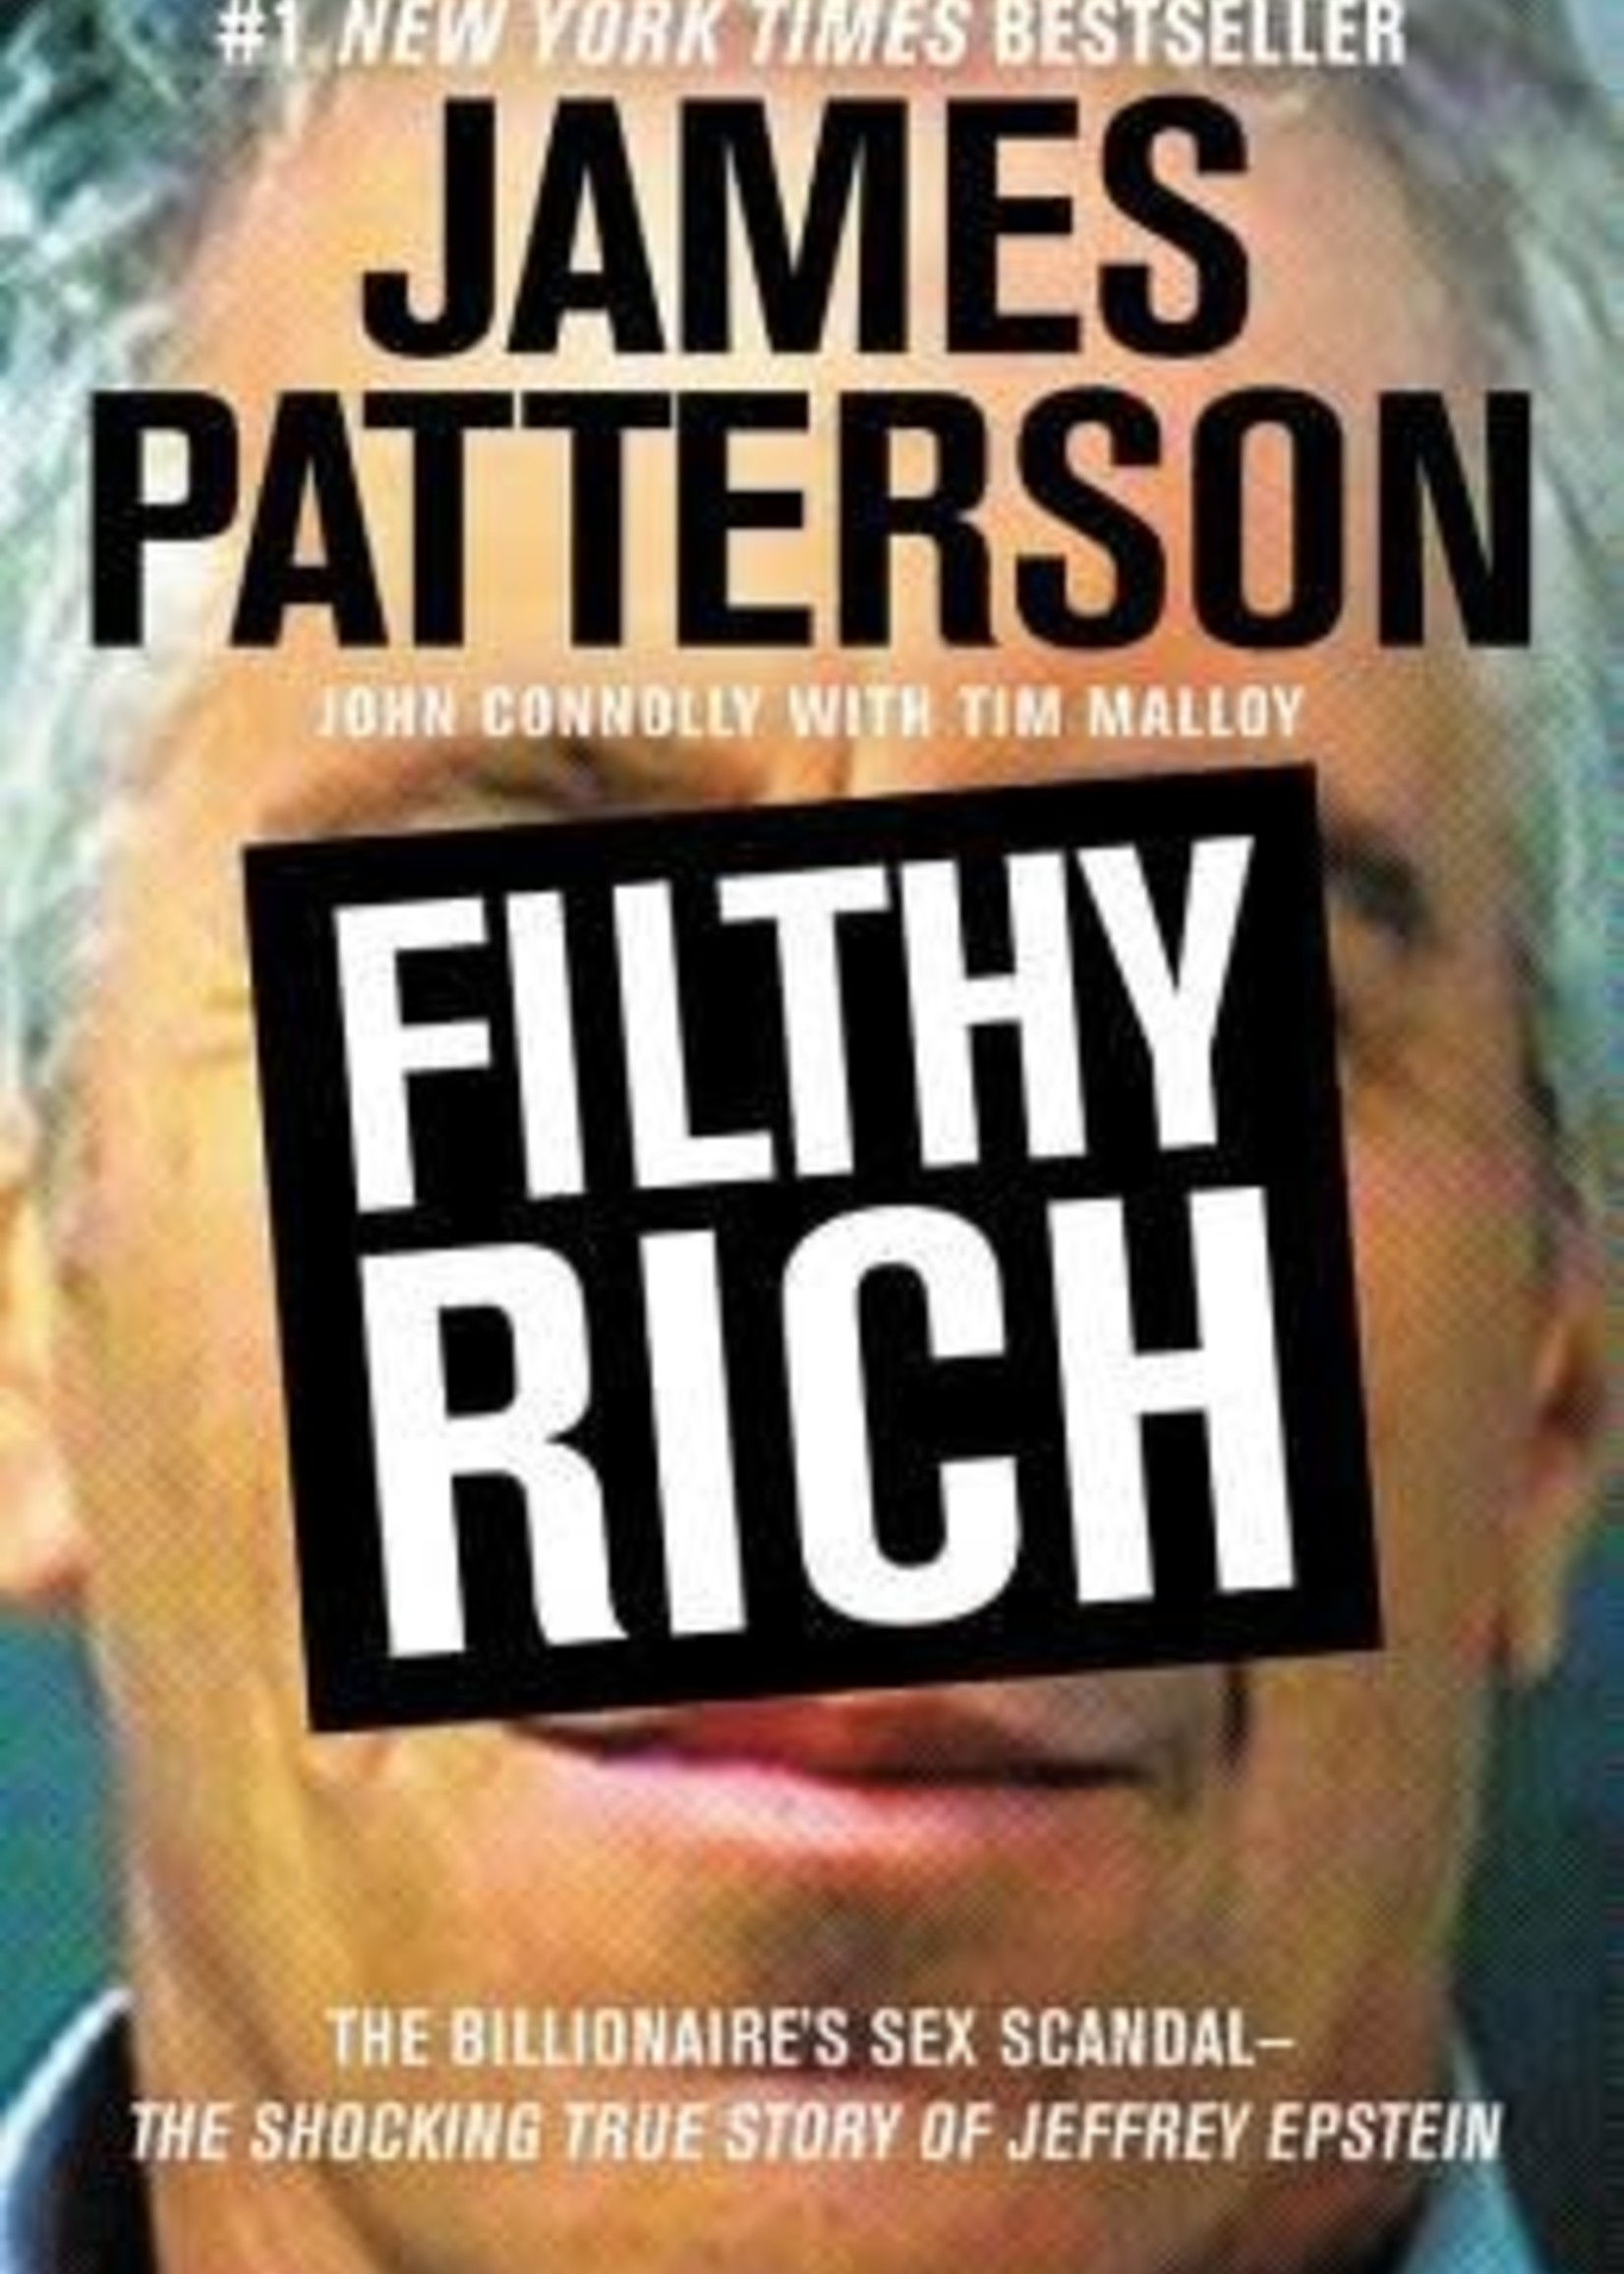 USED - Filthy Rich: A Powerful Billionaire, the Sex Scandal that Undid Him, and All the Justice that Money Can Buy: The Shocking True Story of Jeffrey Epstein by James Patterson,  John Connolly,  Tim Malloy